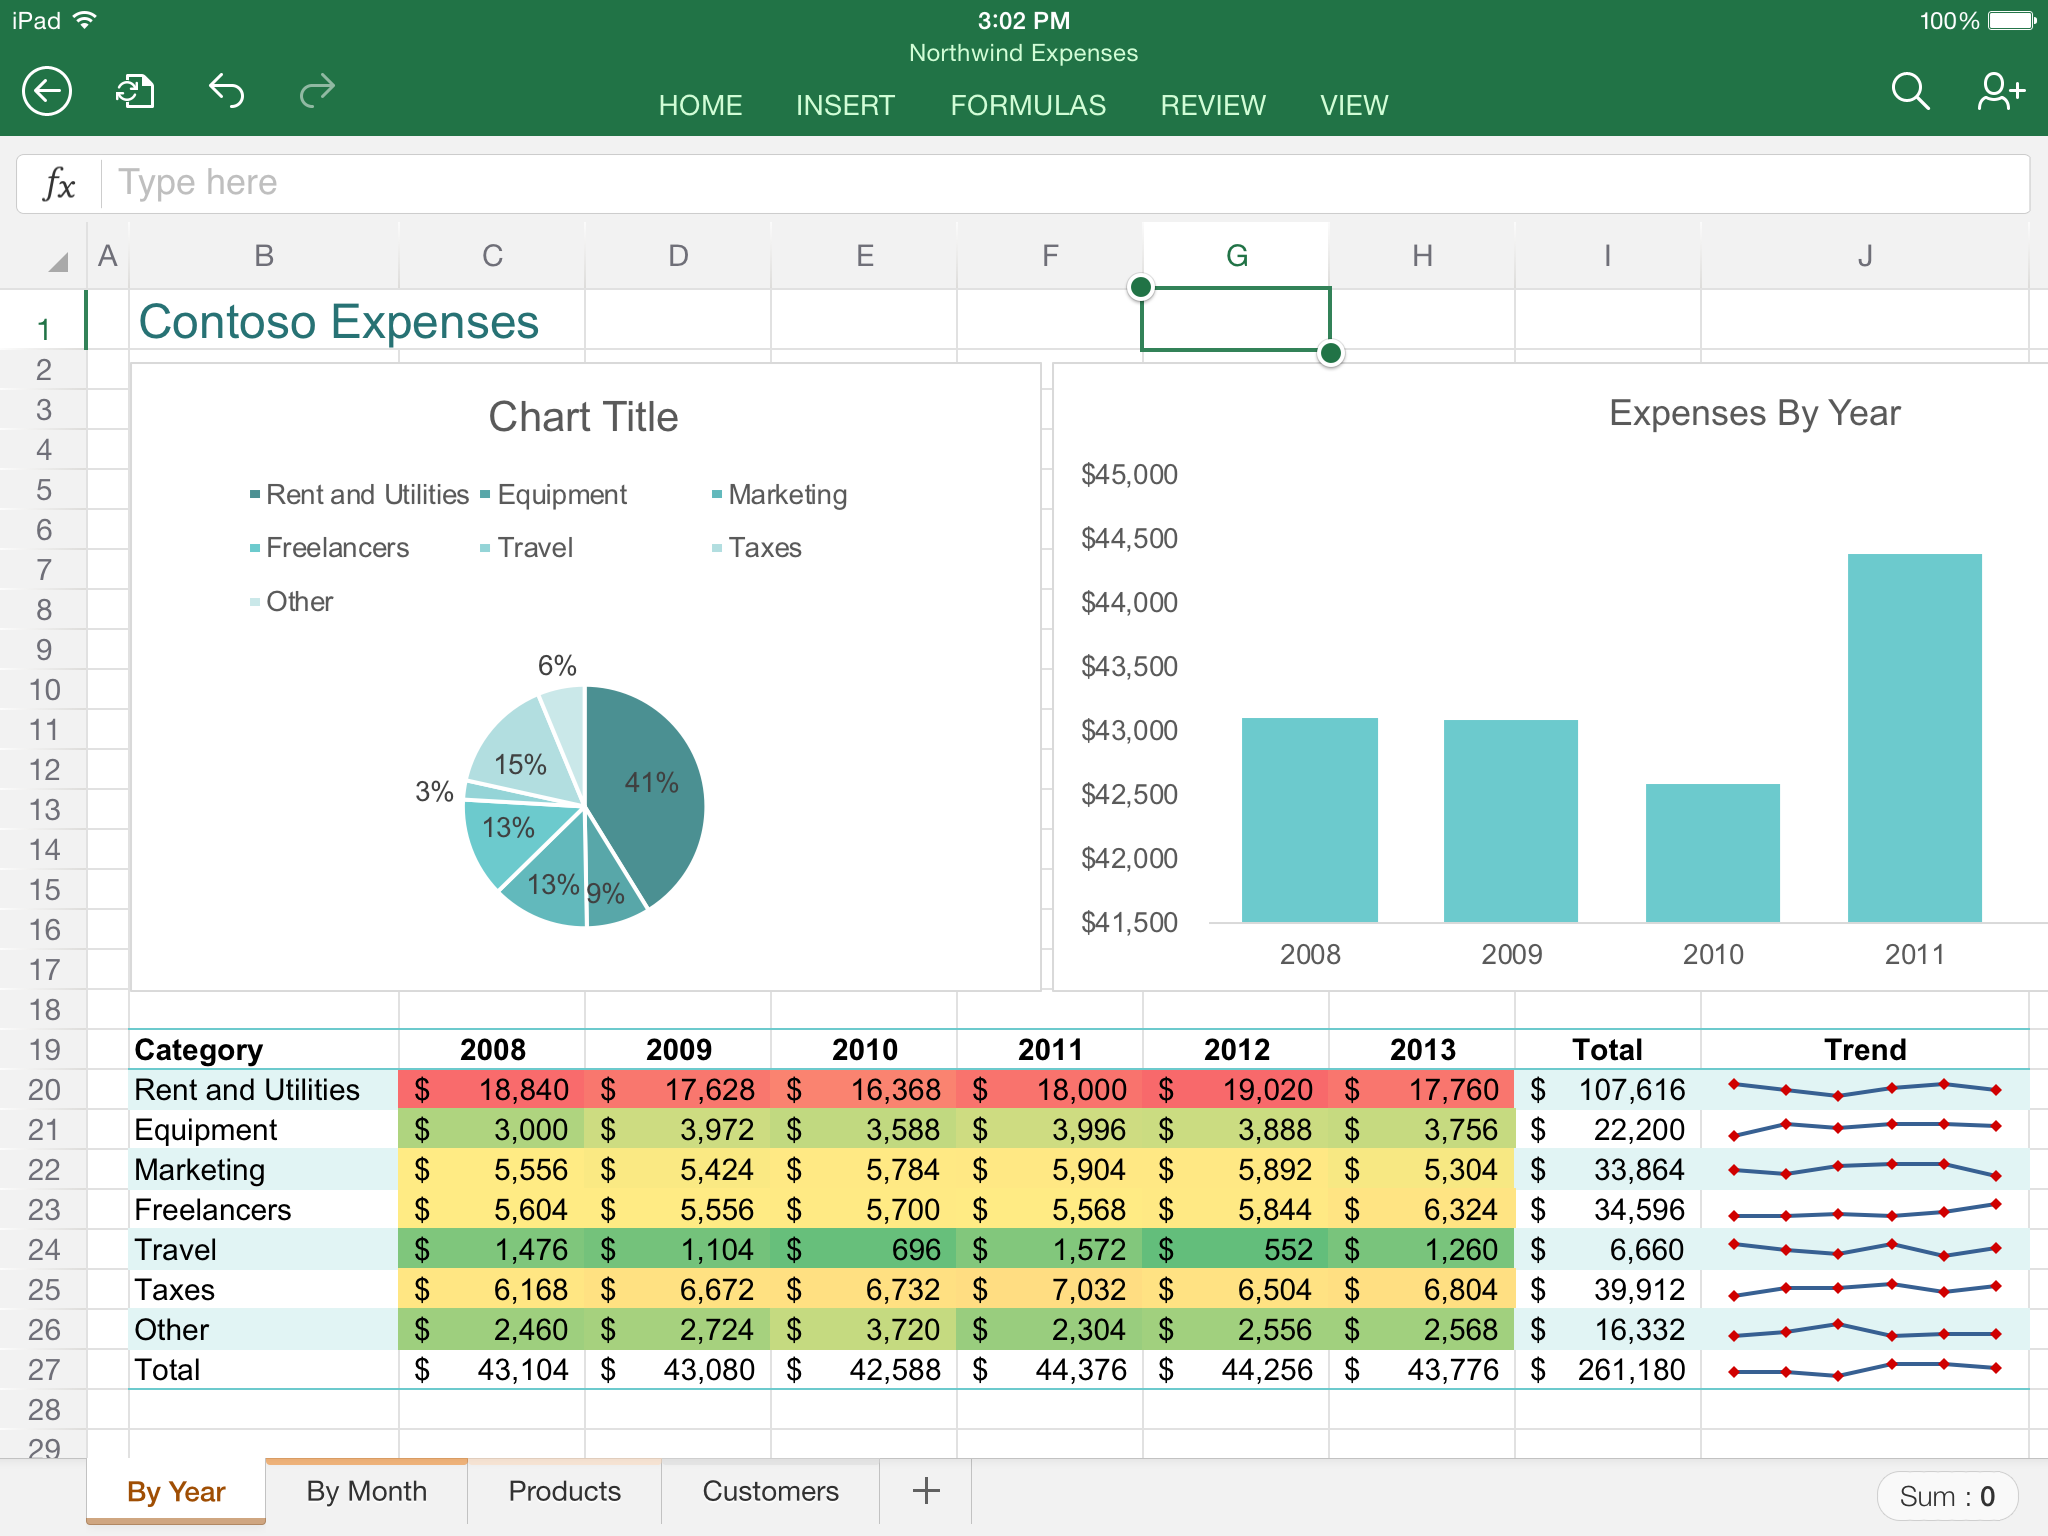 Ediblewildsus  Terrific App Highlight Excel  Mobile Digital Now With Inspiring Excel In Action With Comely Bi Publisher Excel Template Also Excel Share In Addition Copy Data From Pdf To Excel And Solver Table Excel As Well As Compare Documents In Excel Additionally How To Get Microsoft Excel From Youstonybrookedu With Ediblewildsus  Inspiring App Highlight Excel  Mobile Digital Now With Comely Excel In Action And Terrific Bi Publisher Excel Template Also Excel Share In Addition Copy Data From Pdf To Excel From Youstonybrookedu